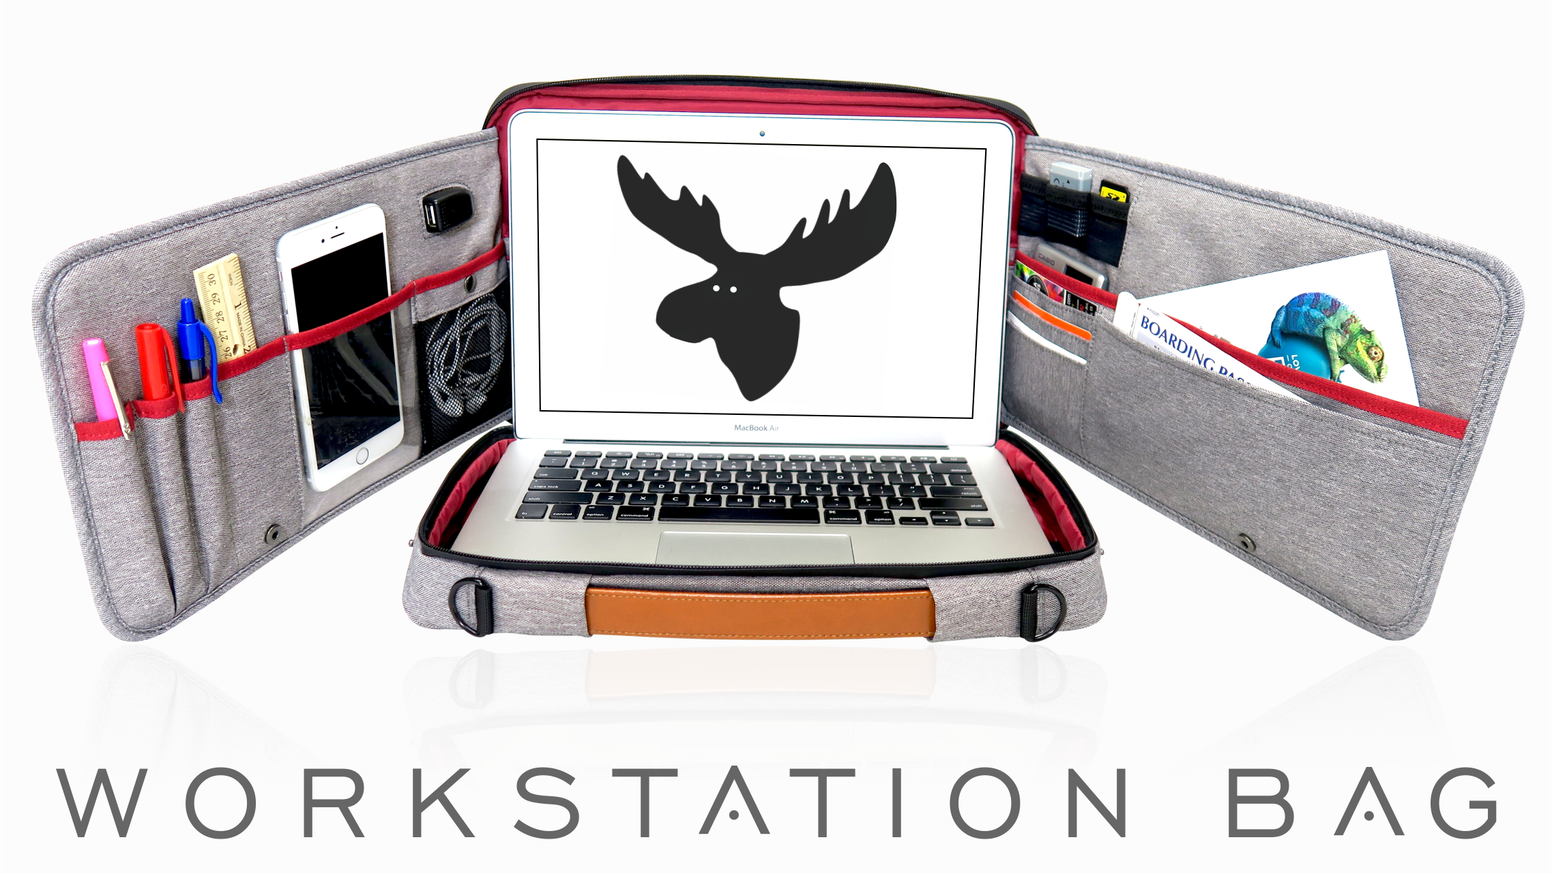 Reinvented laptop bag with innovative features that creates your own private workstation anywhere!